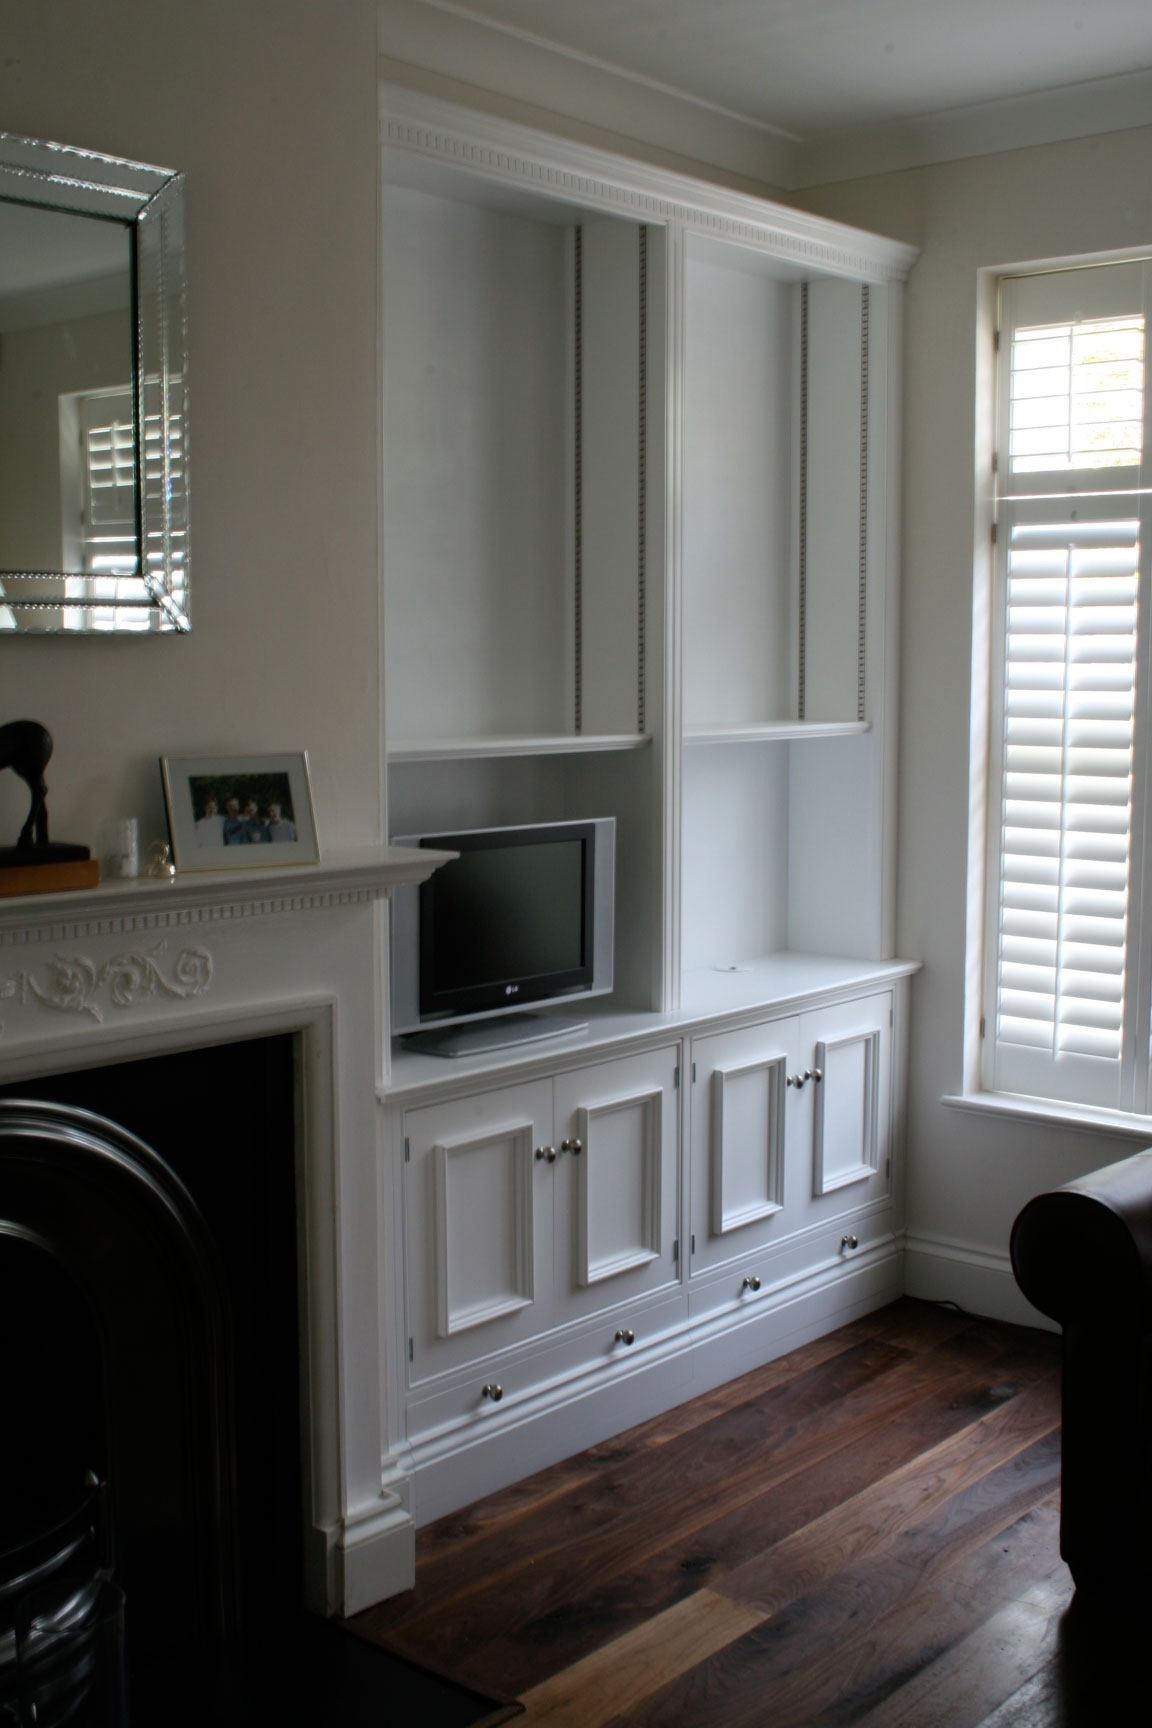 Bespoke Cabinetry Bookcases Desks Cabinet Makers Intended For Bespoke Tv Unit (View 3 of 15)